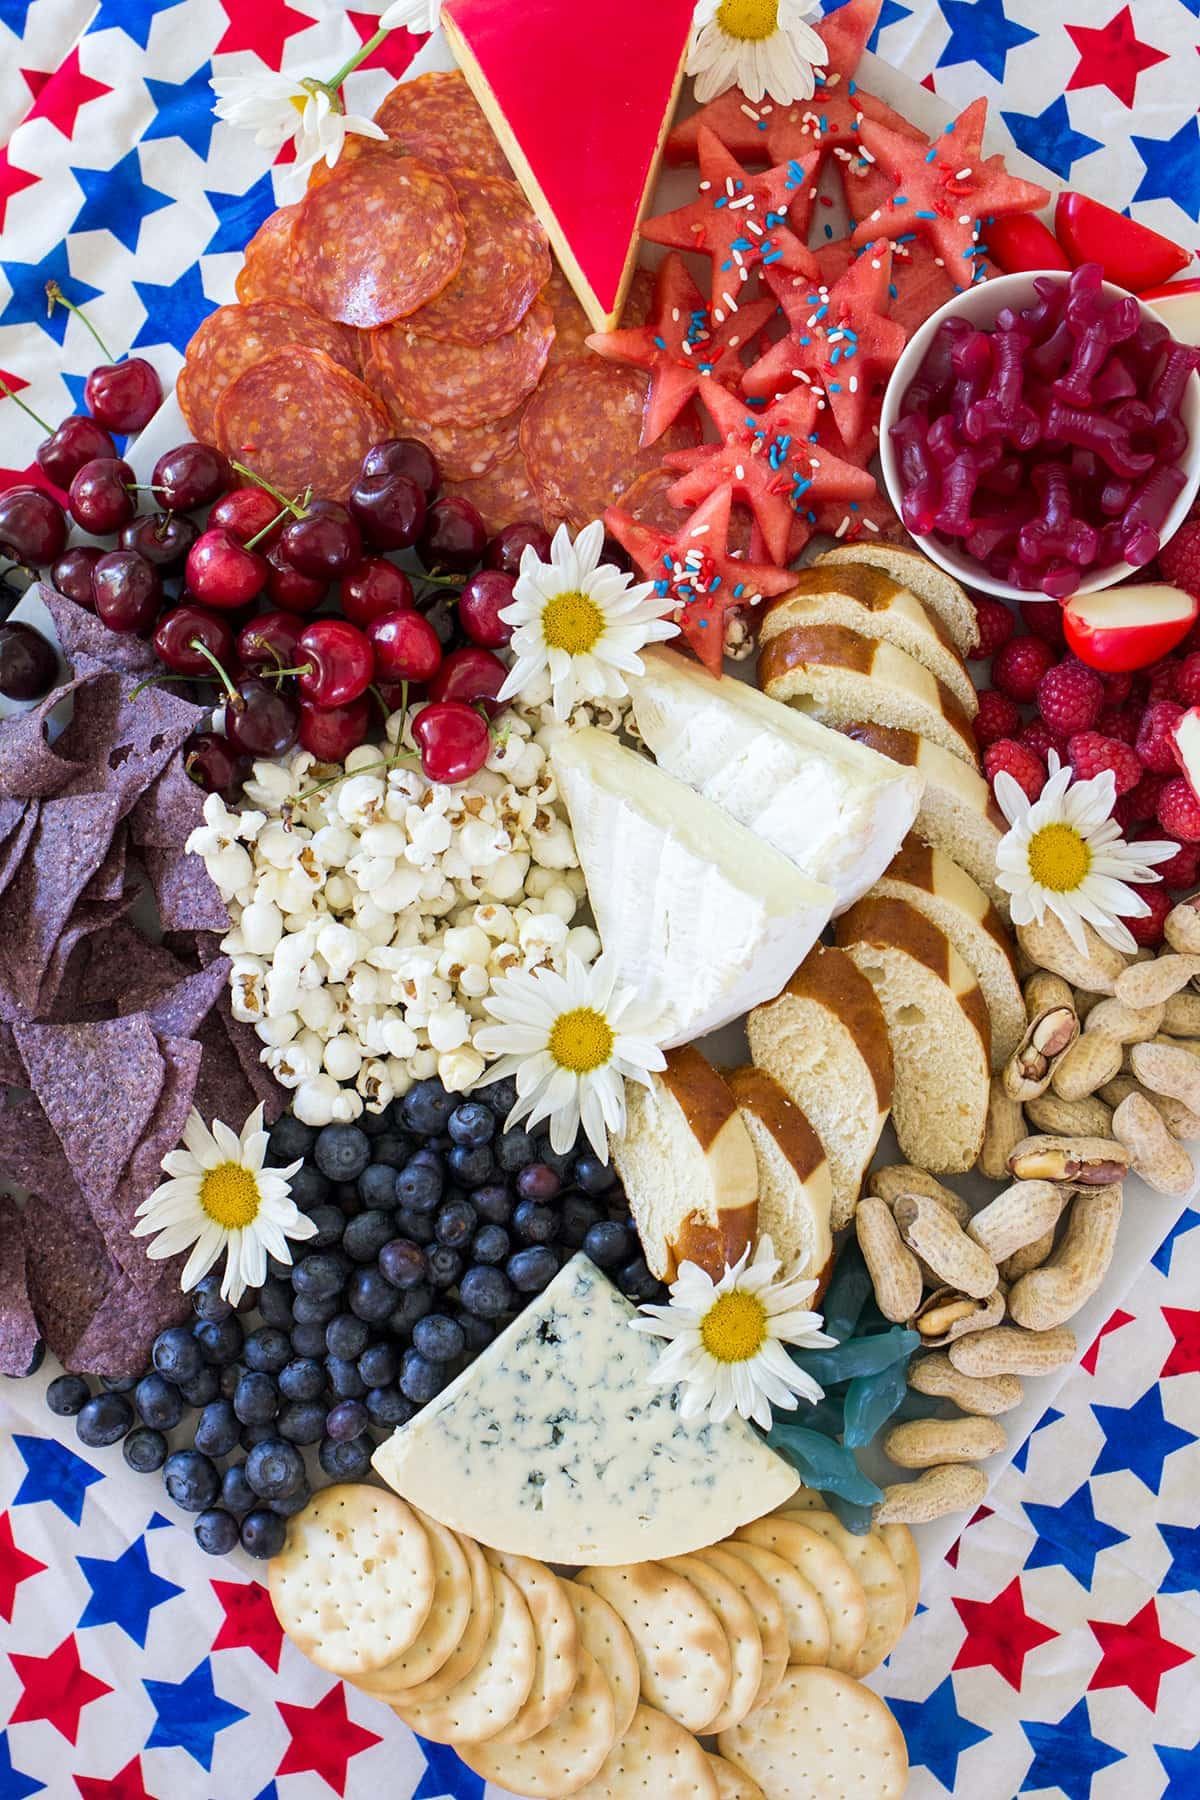 The Ultimate Red White and Blue 4th of July Cheese Board